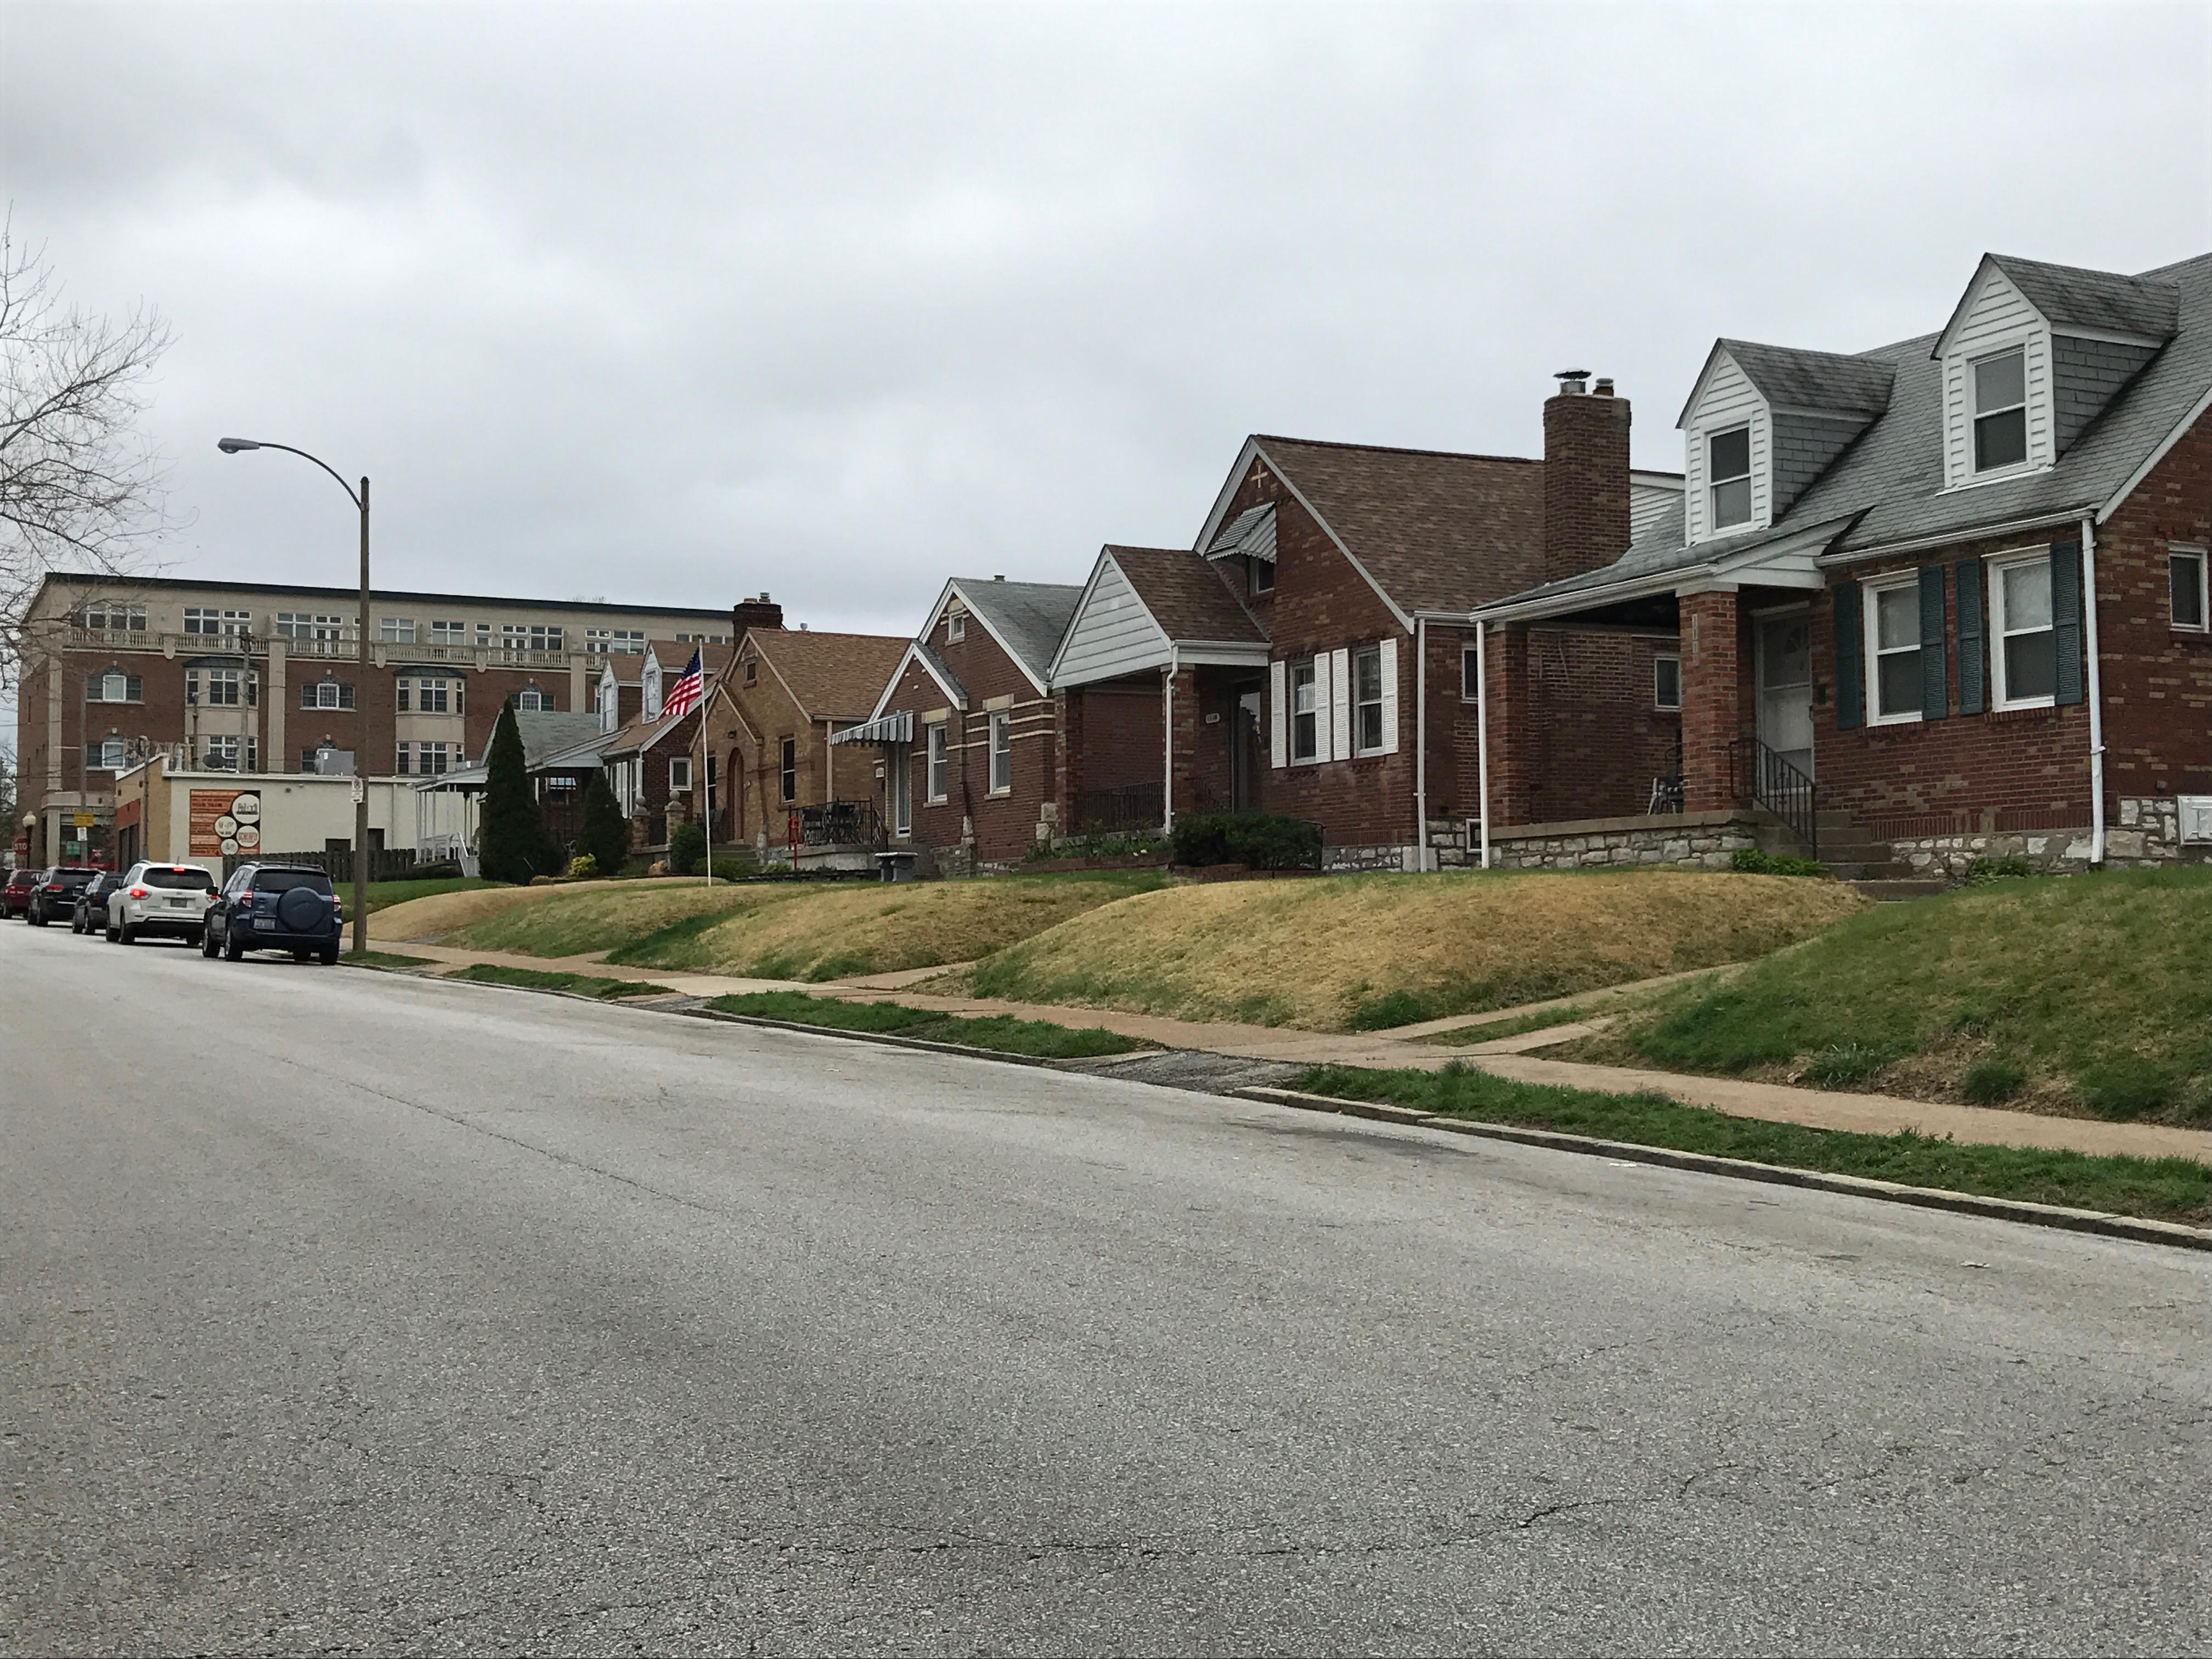 What's Brewing? Dogtown as a Middle Neighborhood